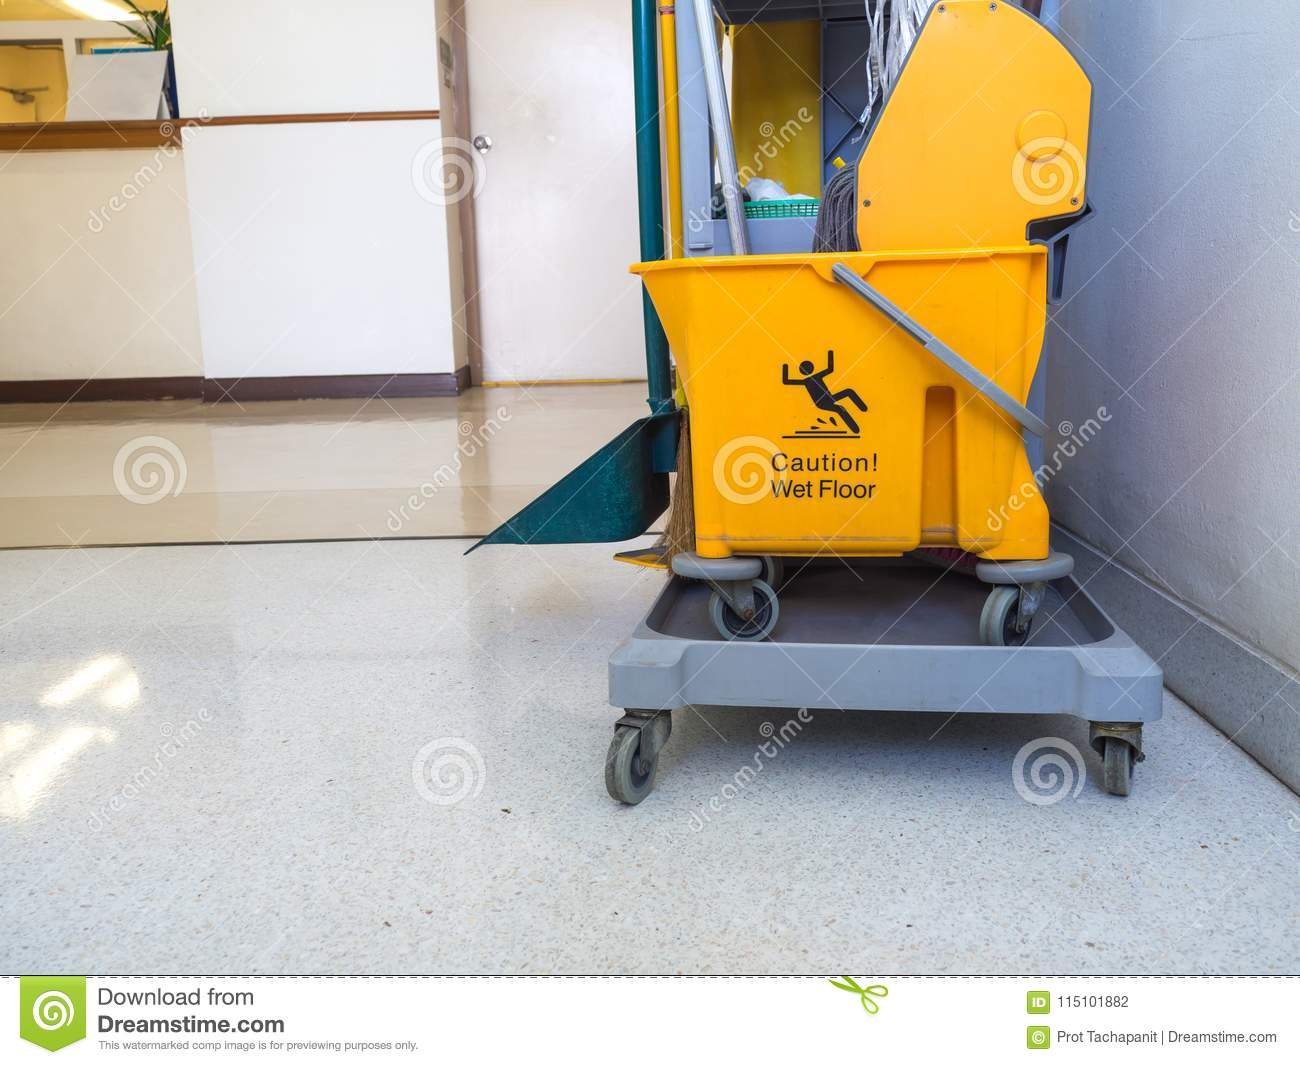 Cleaning tools cart wait for maid or cleaner in the hospital. The warning signs cleaning in process the floor in building. Bucket